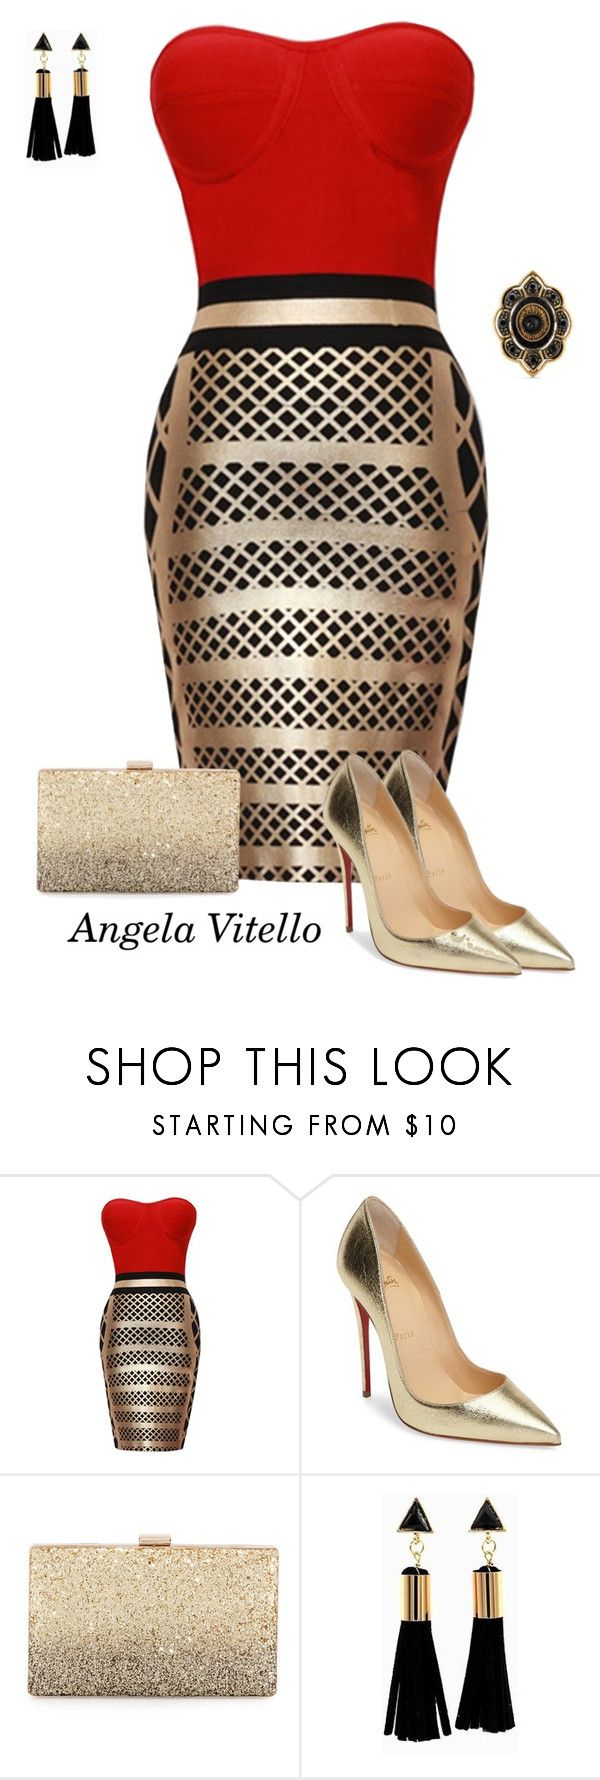 """Untitled #911"" by angela-vitello ❤ liked on Polyvore featuring Christian Louboutin, Neiman Marcus and Gucci"